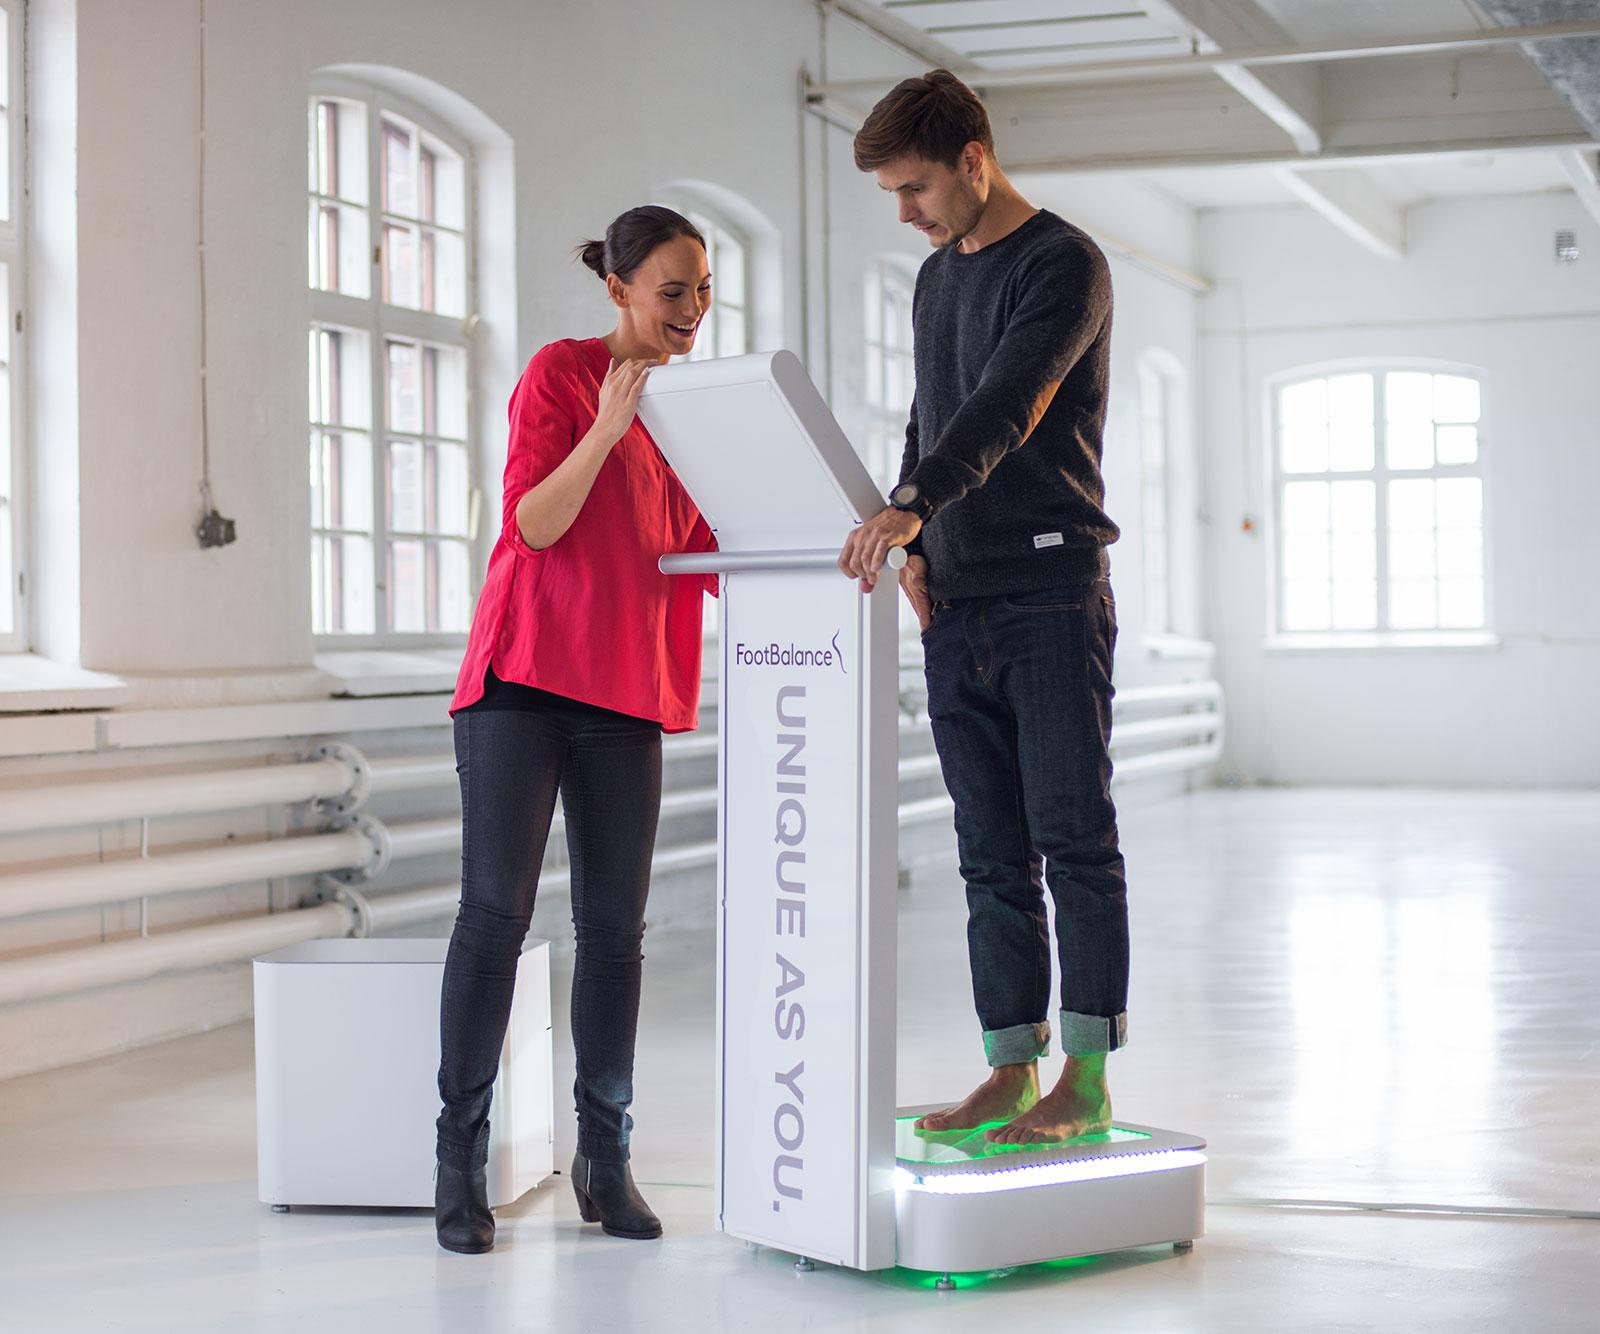 A woman and man doing a FootBalance foot scanning and analysis